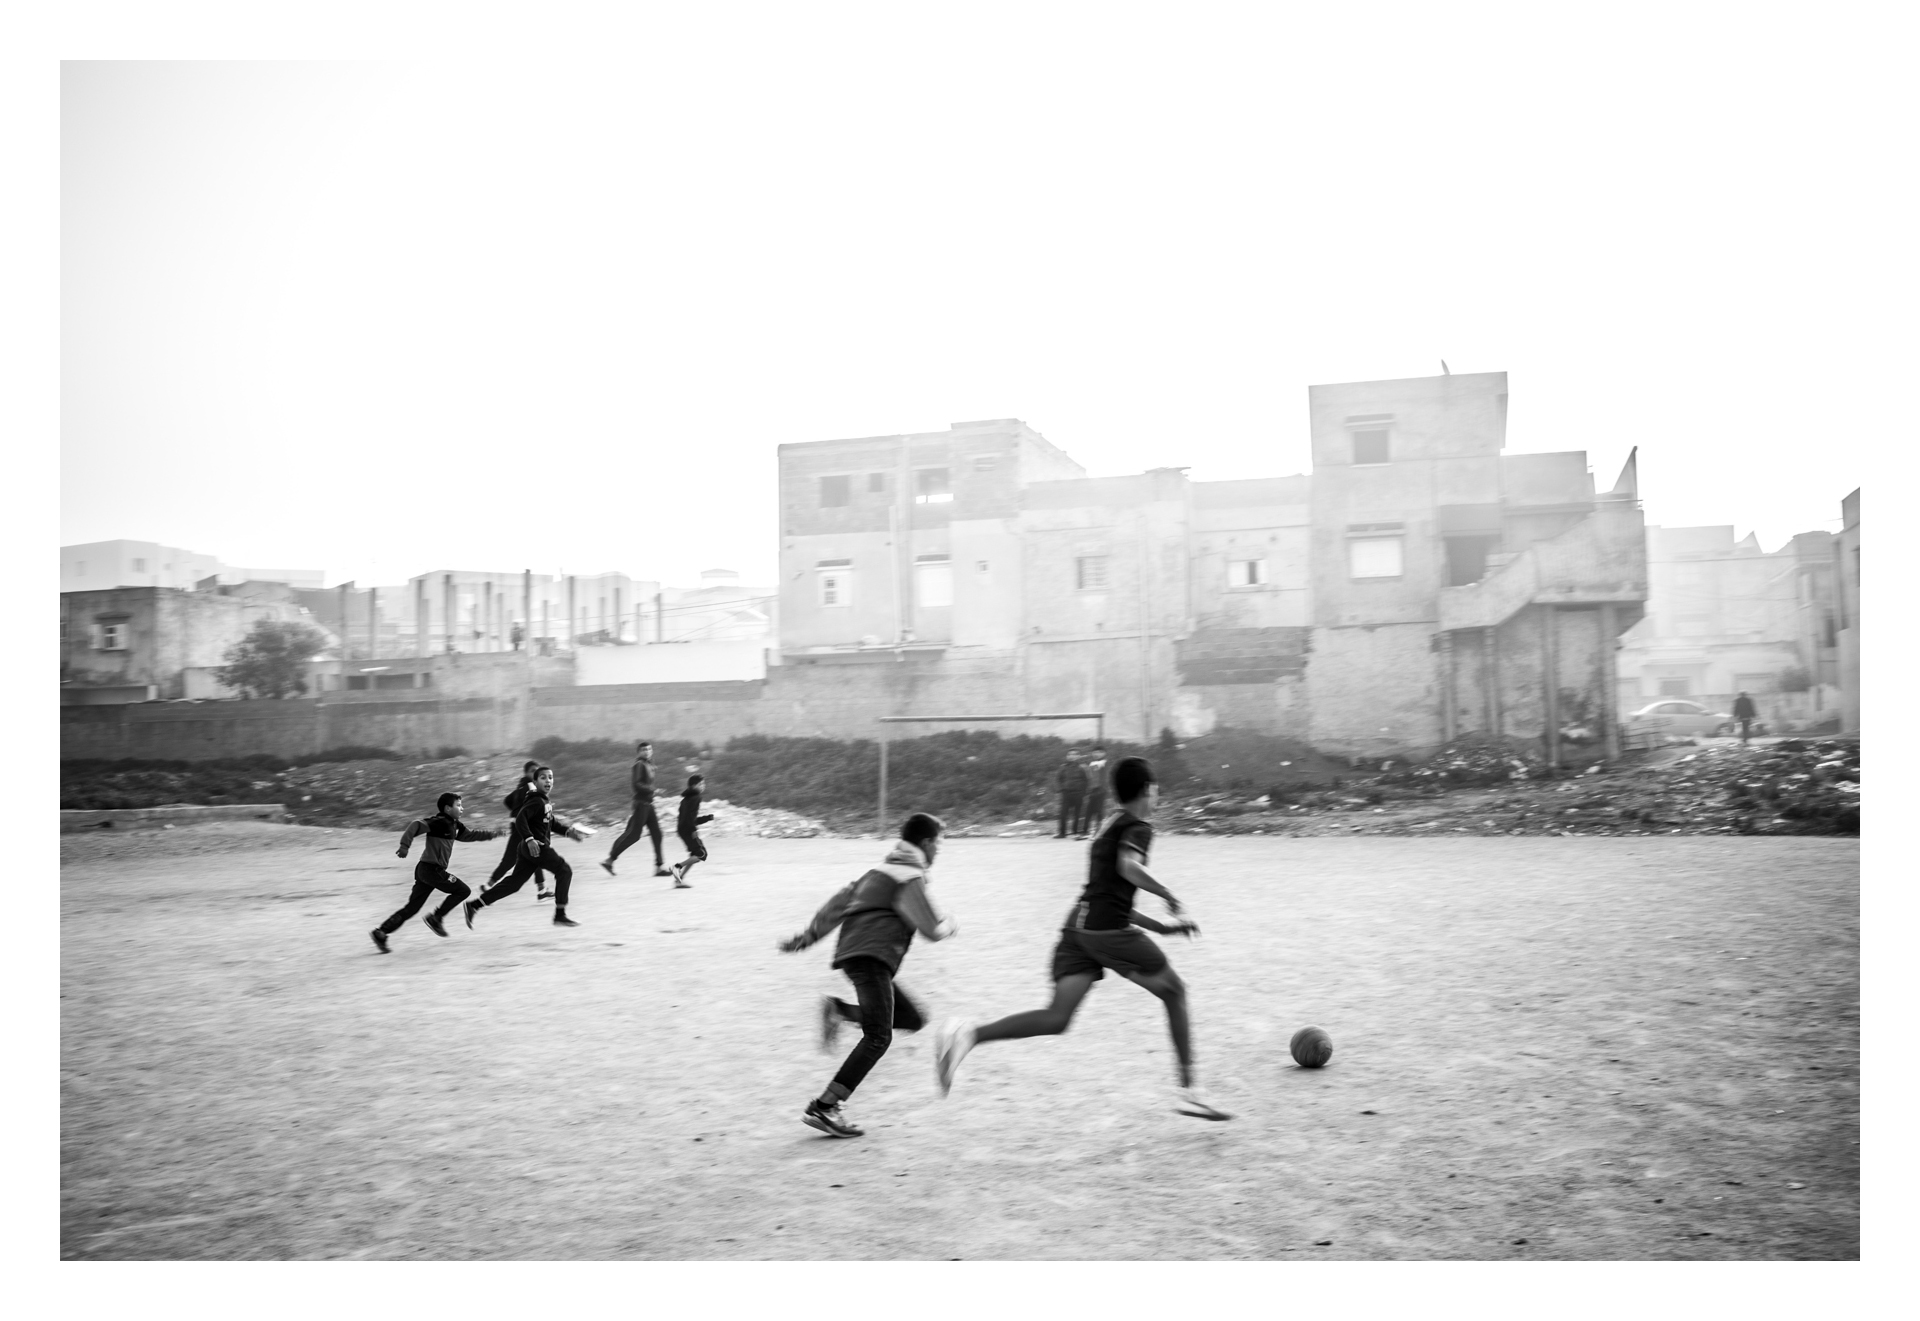 Tunisia, Tunis, Douar Hicher, 21 December 2015